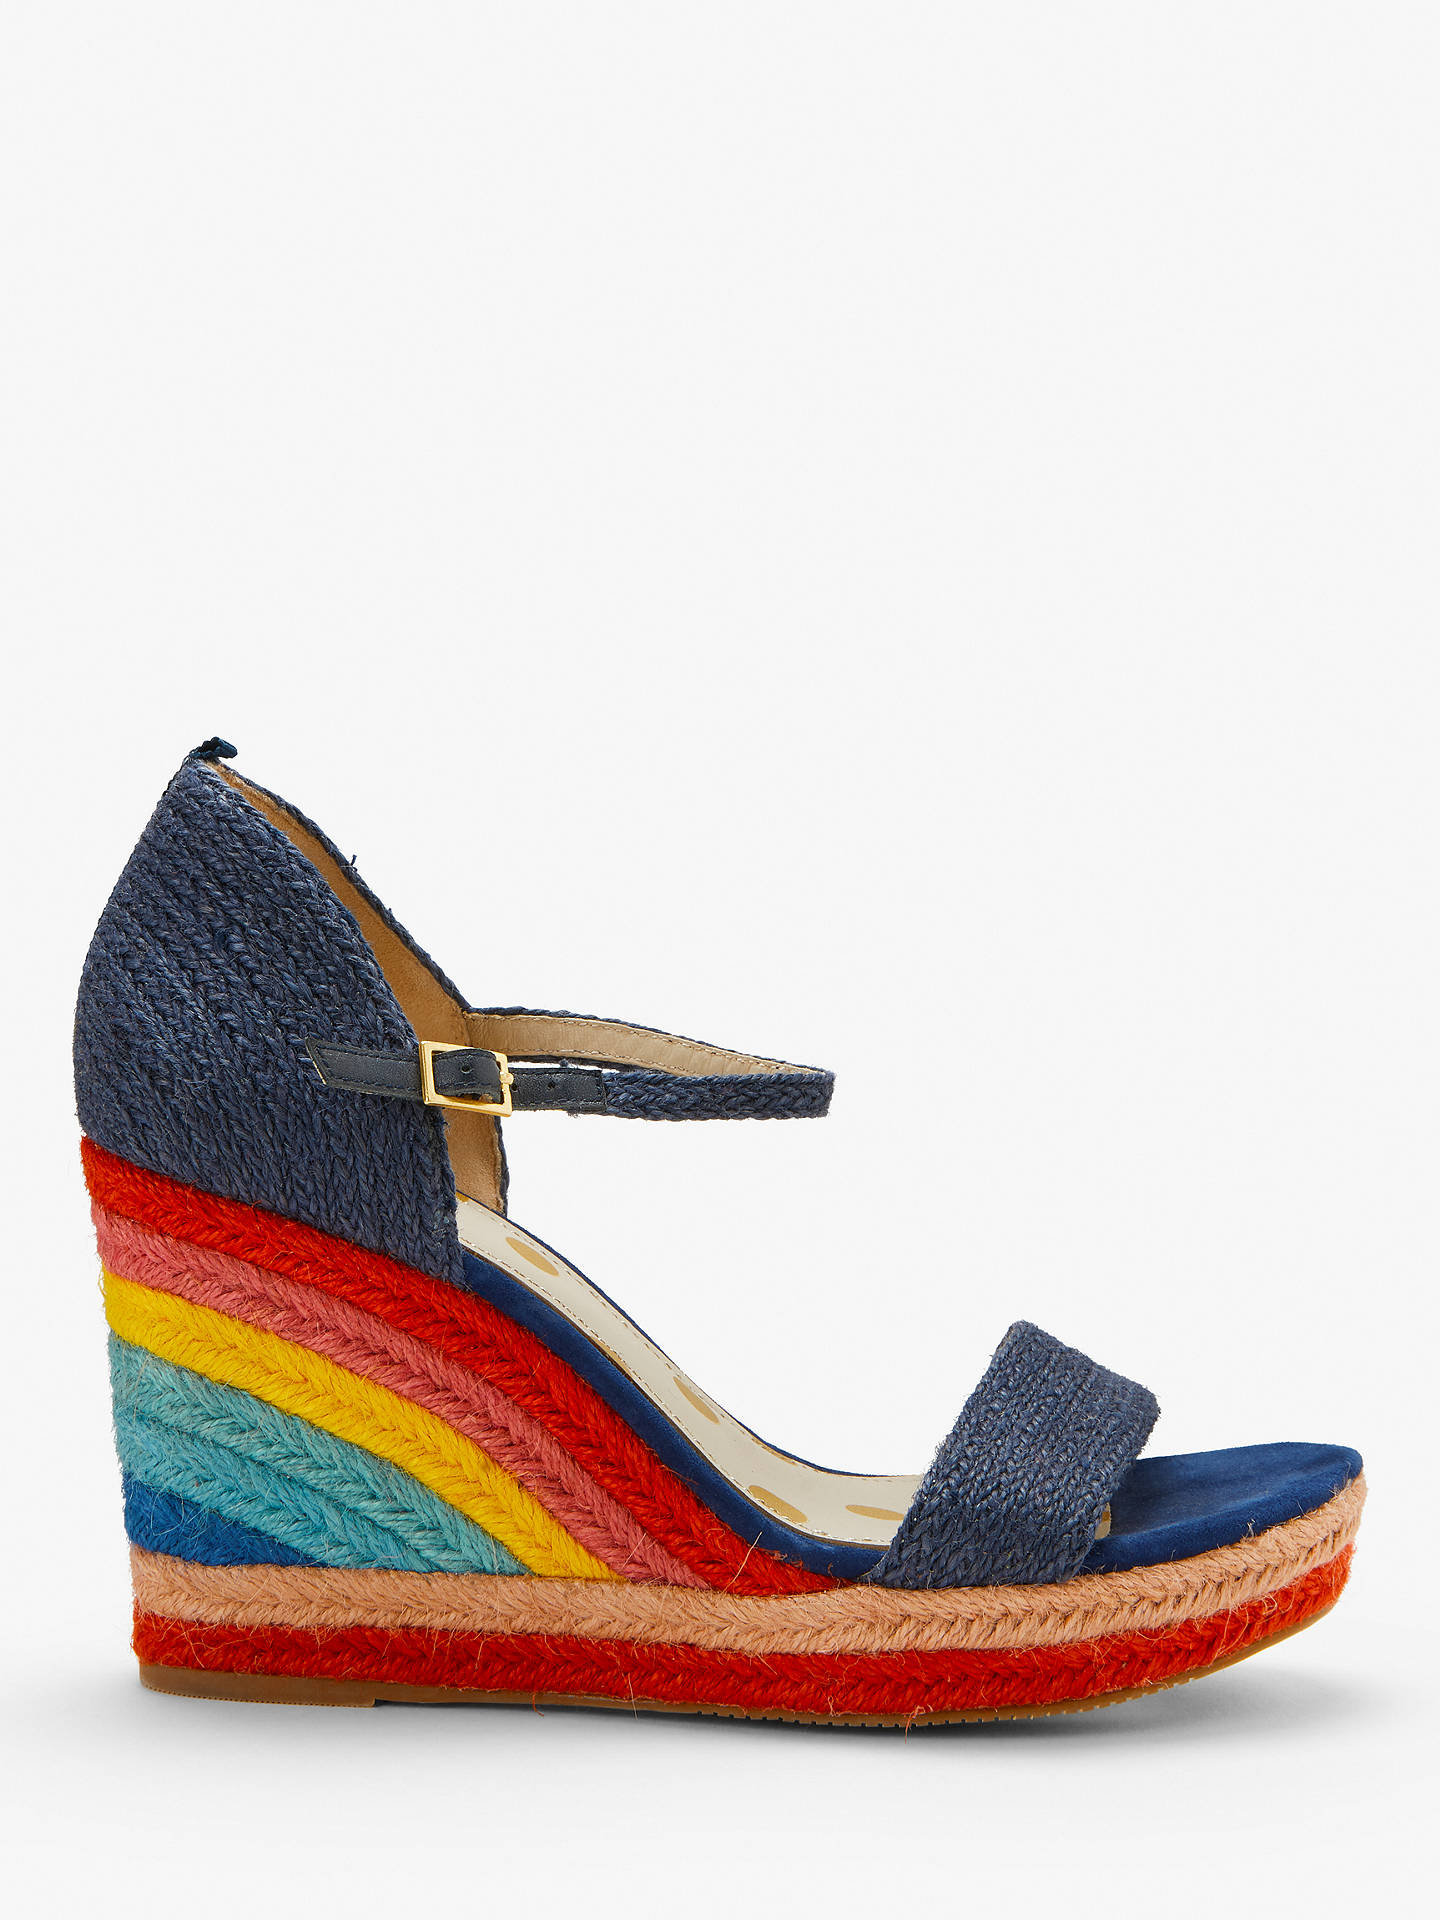 280f26d0864 Boden Lily Espadrille Wedges, Navy, Navy